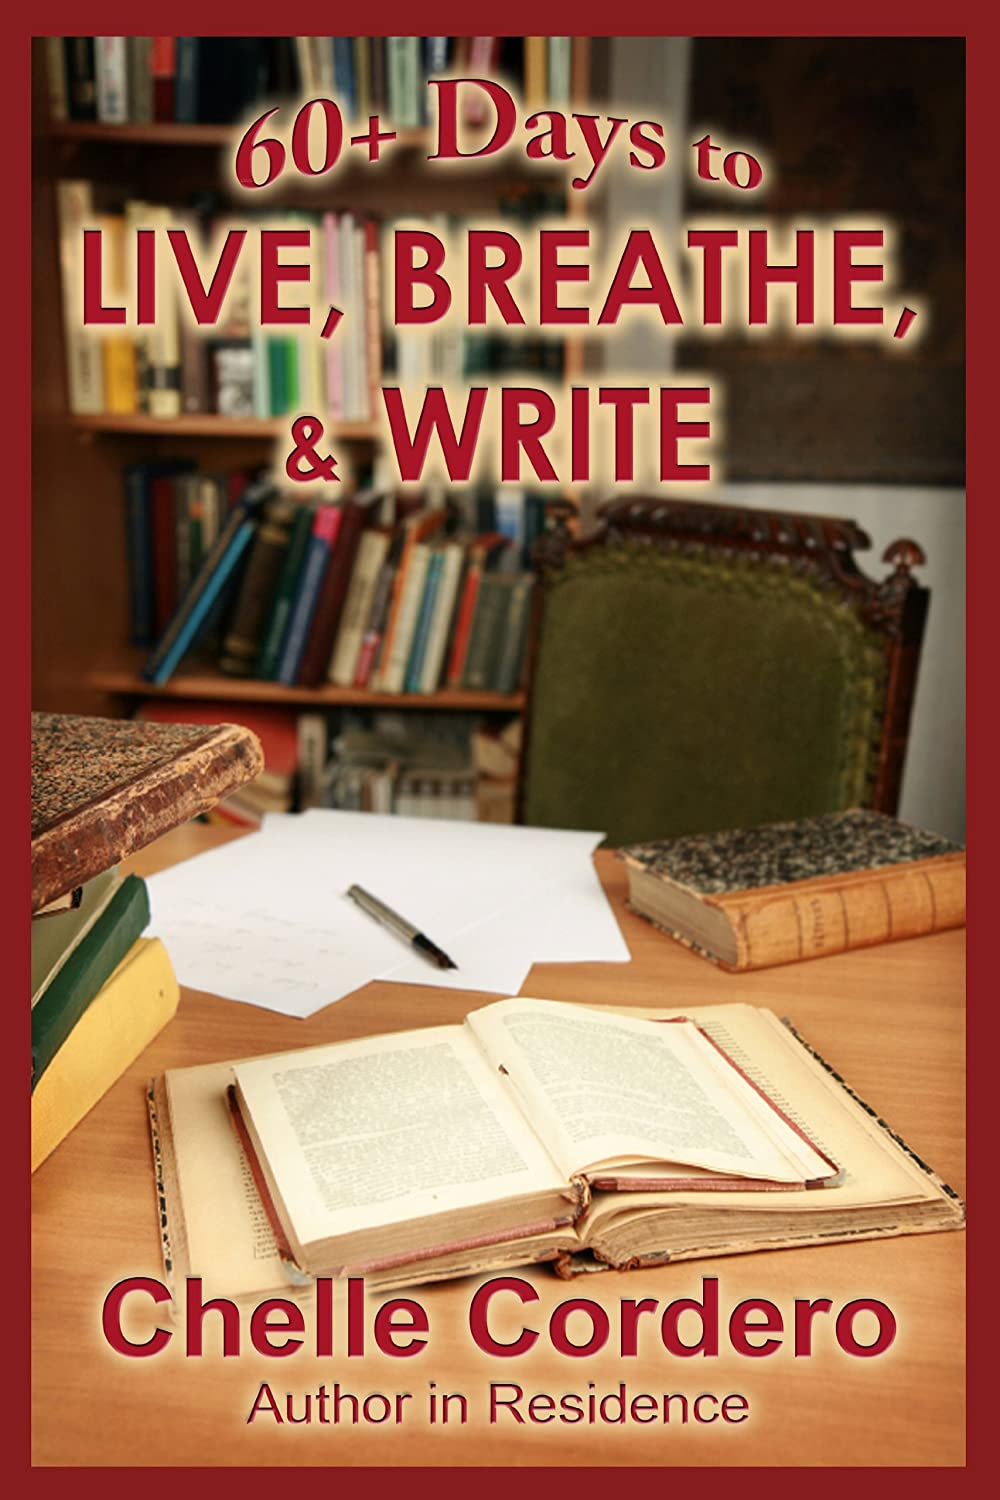 60+ Days to Live, Breathe, & Write by Chelle Cordero